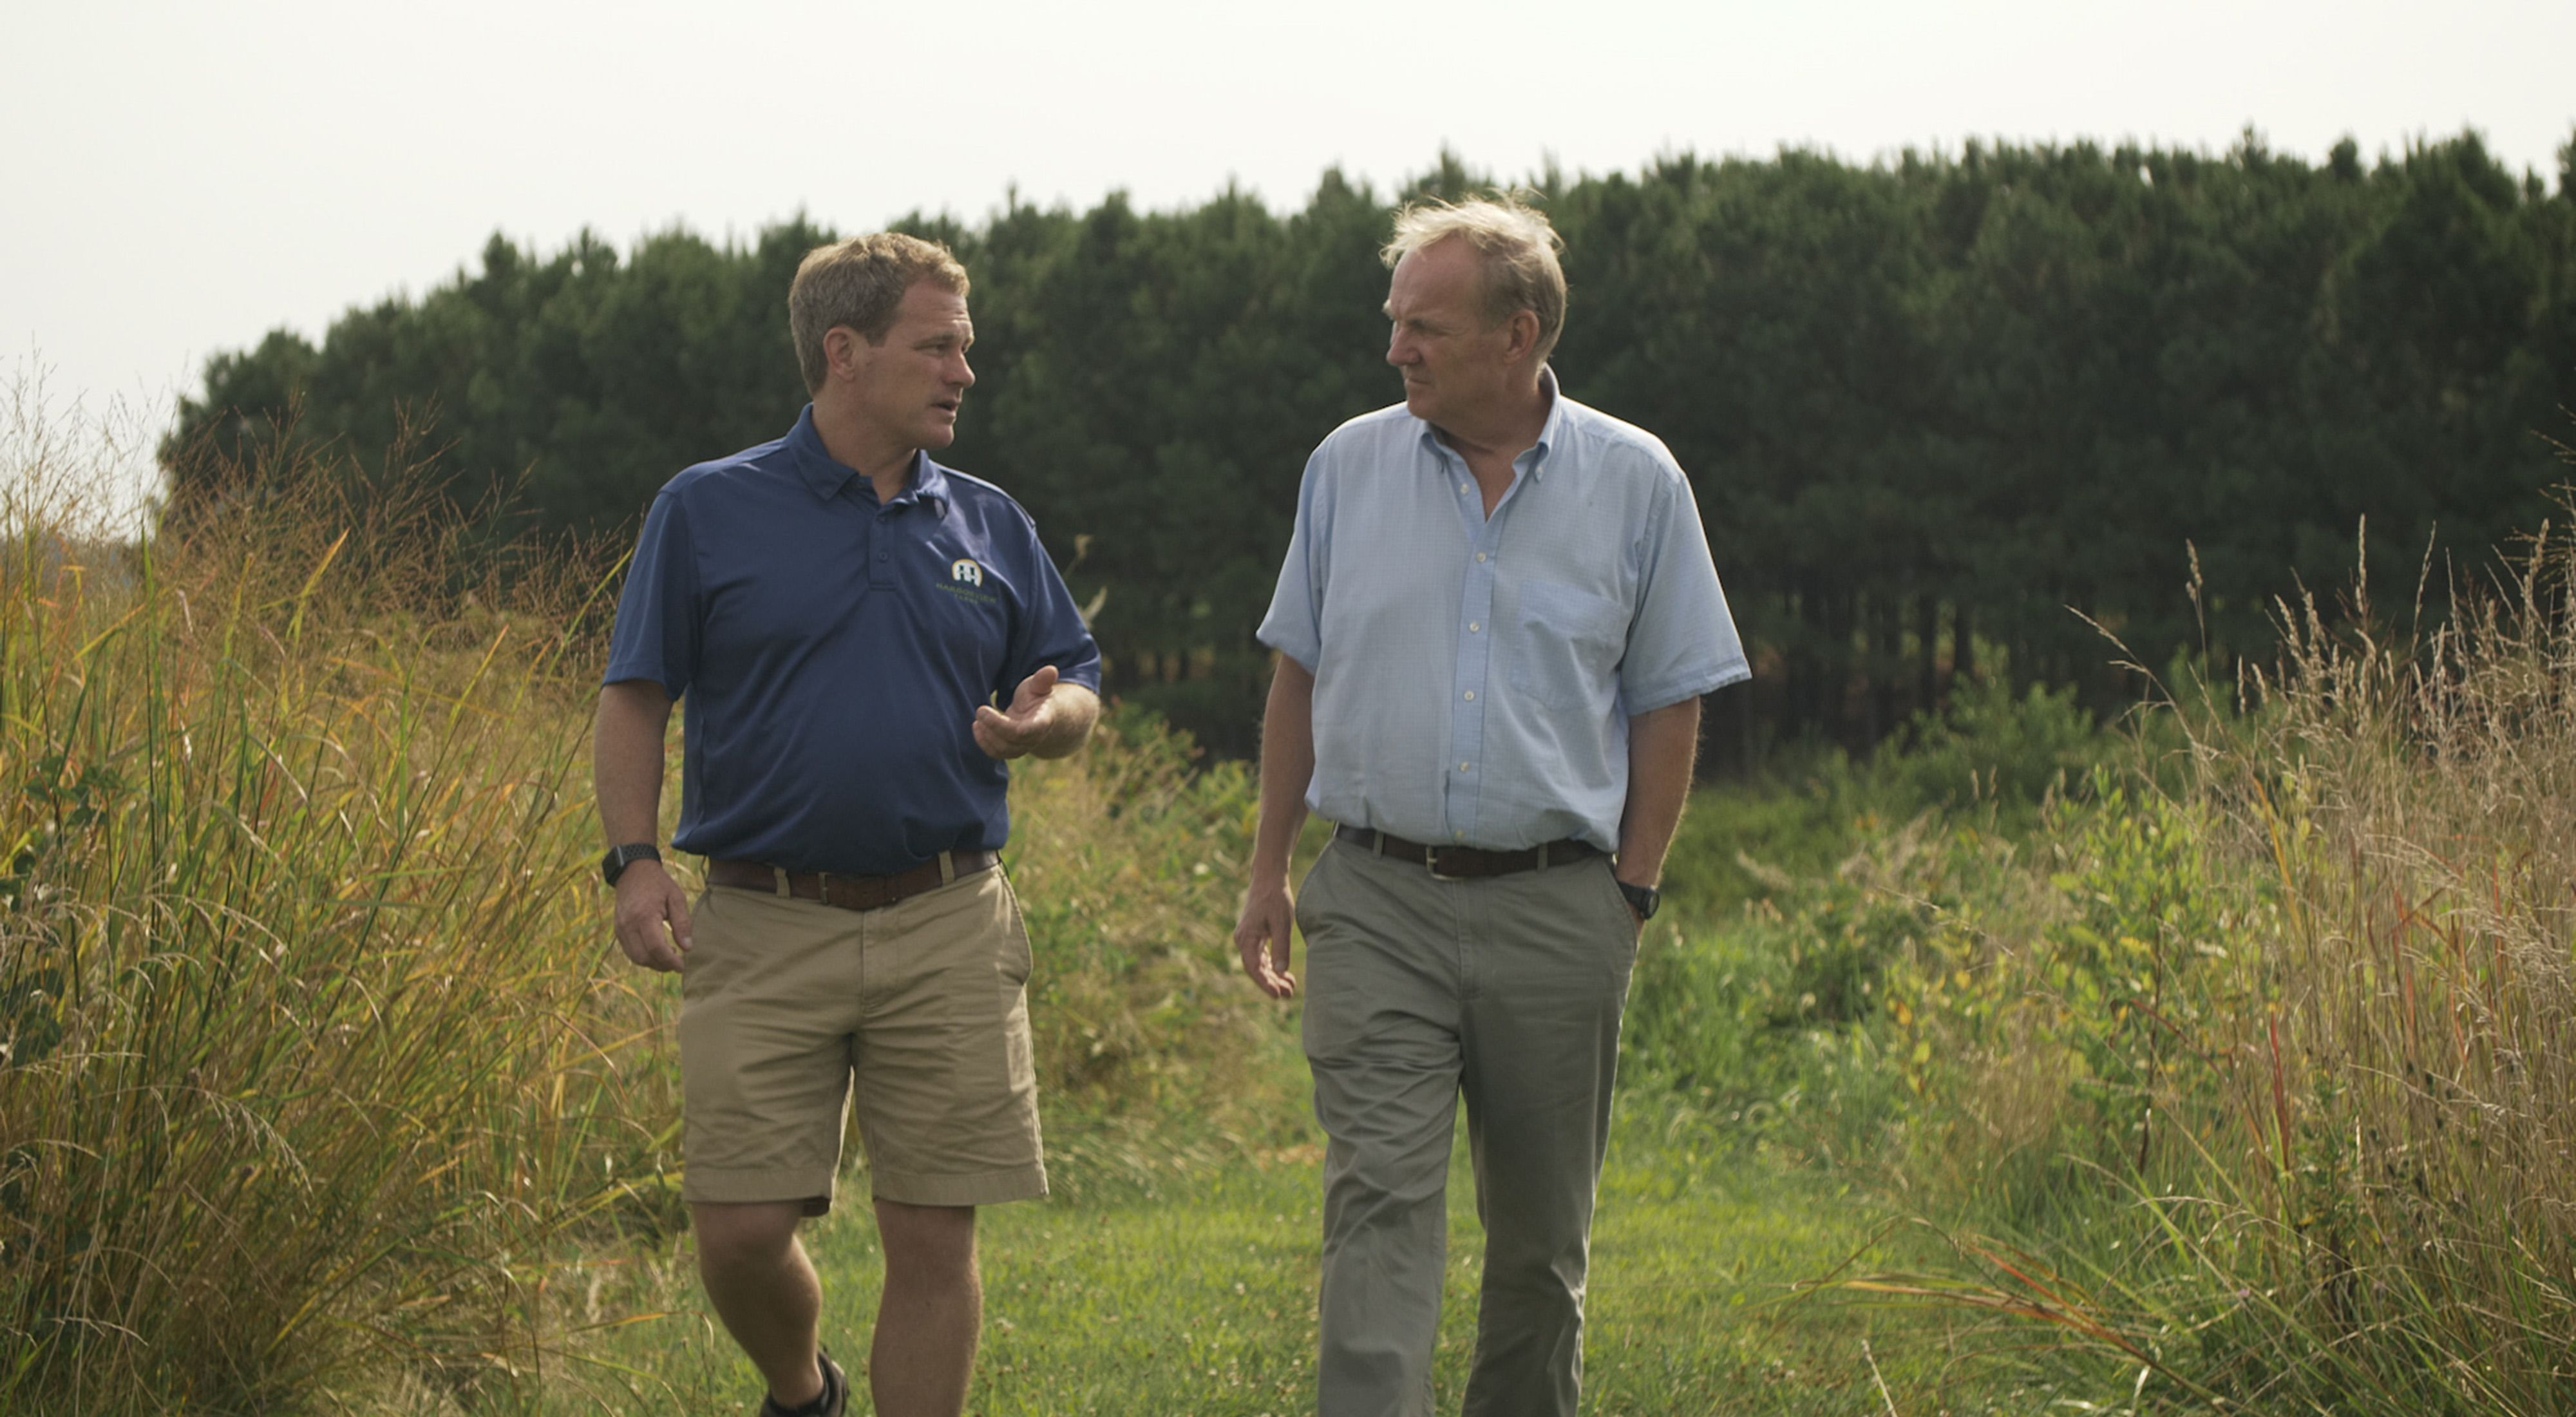 Farmer Trey Hill and landowner Joe Hickman walk through farm fields.